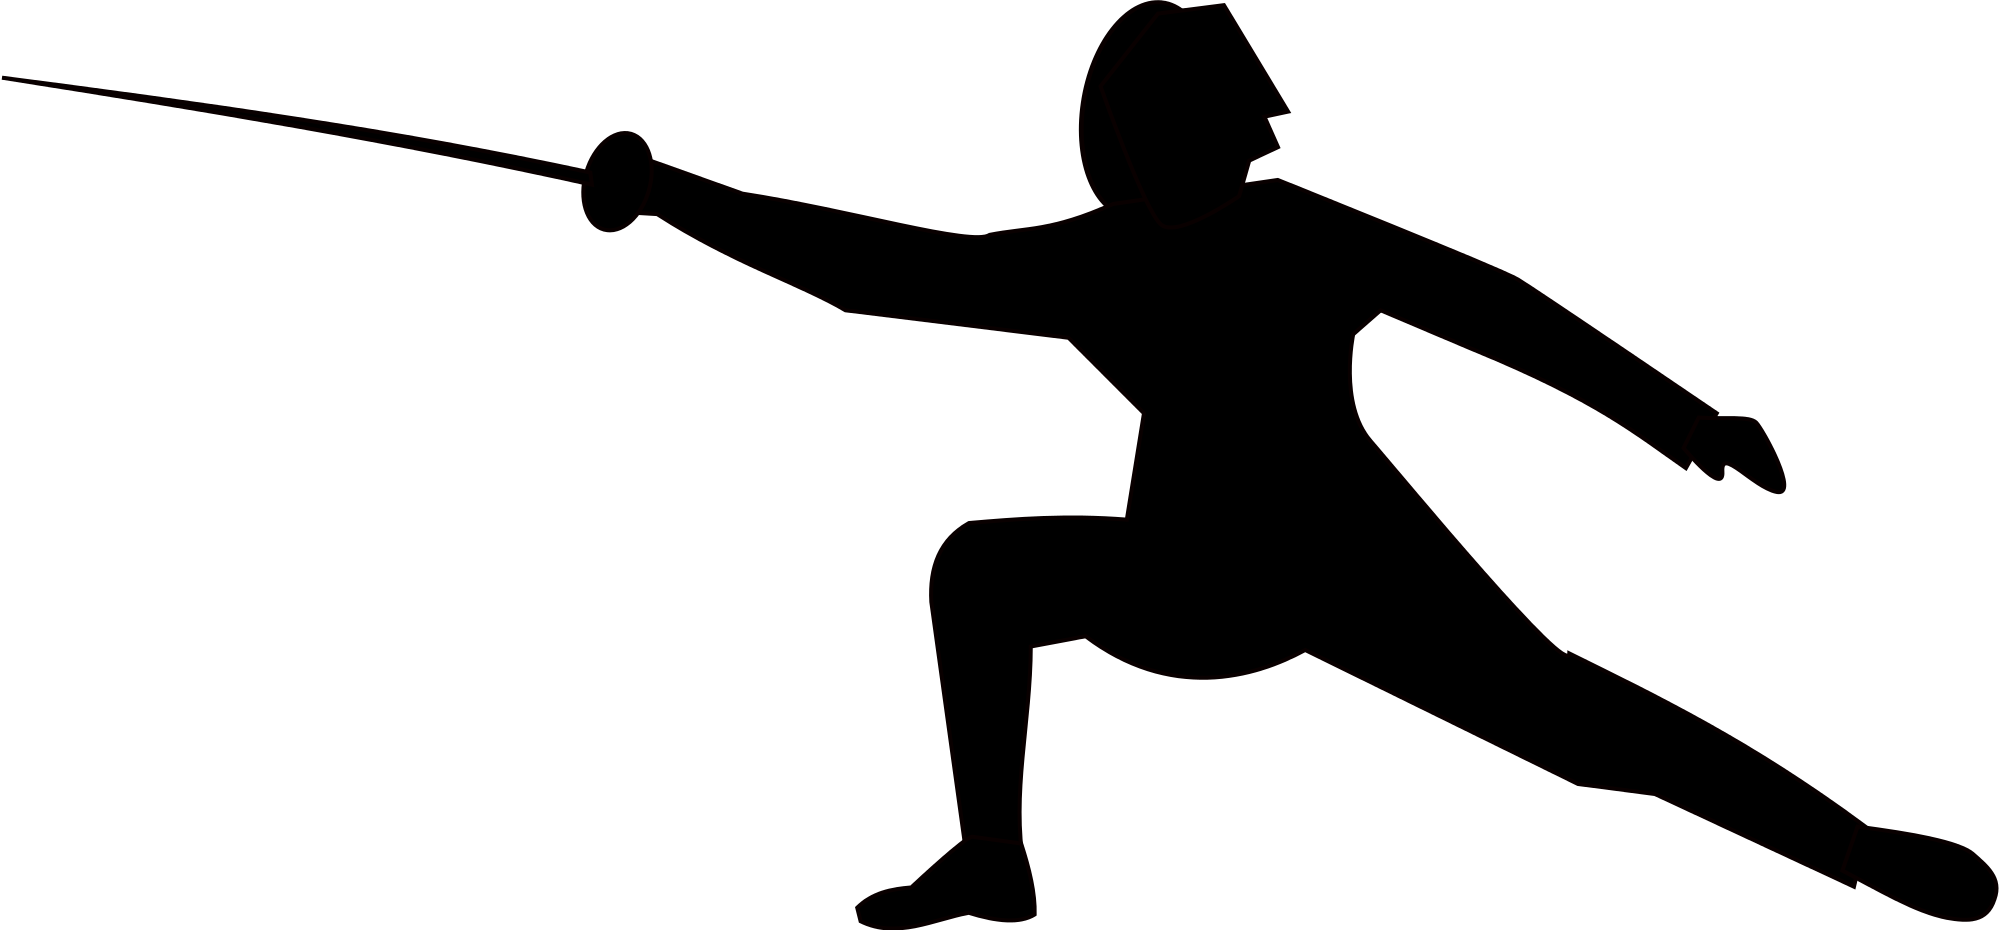 Fence clipart svg. Fencing silhouette at getdrawings